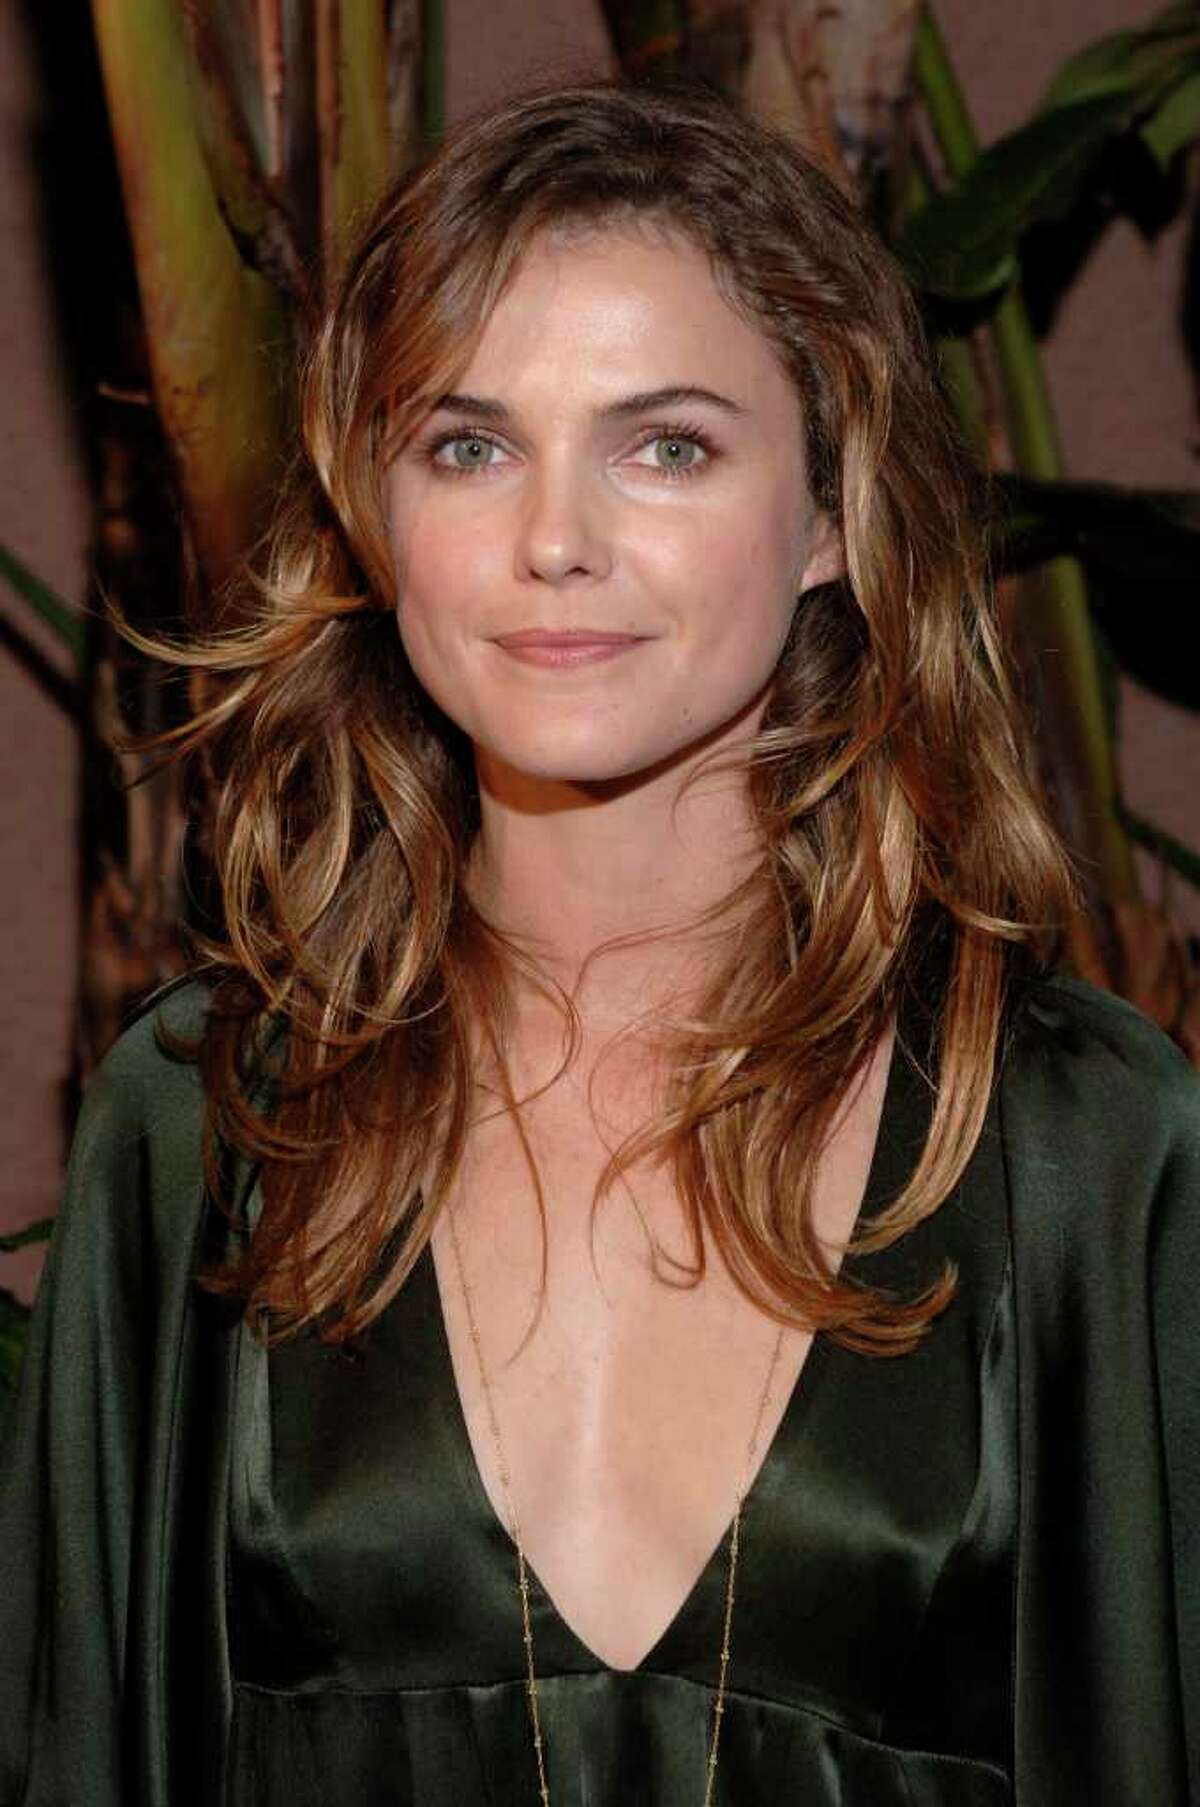 ** FILE ** Actress Keri Russell arrives for the Children's Defense Fund's annual Los Angeles Beat the Odds Awards held at the Beverly Hills Hotel in this Oct. 12, 2006, file photo in Beverly Hills, Calif. Russell, who starred in TV's